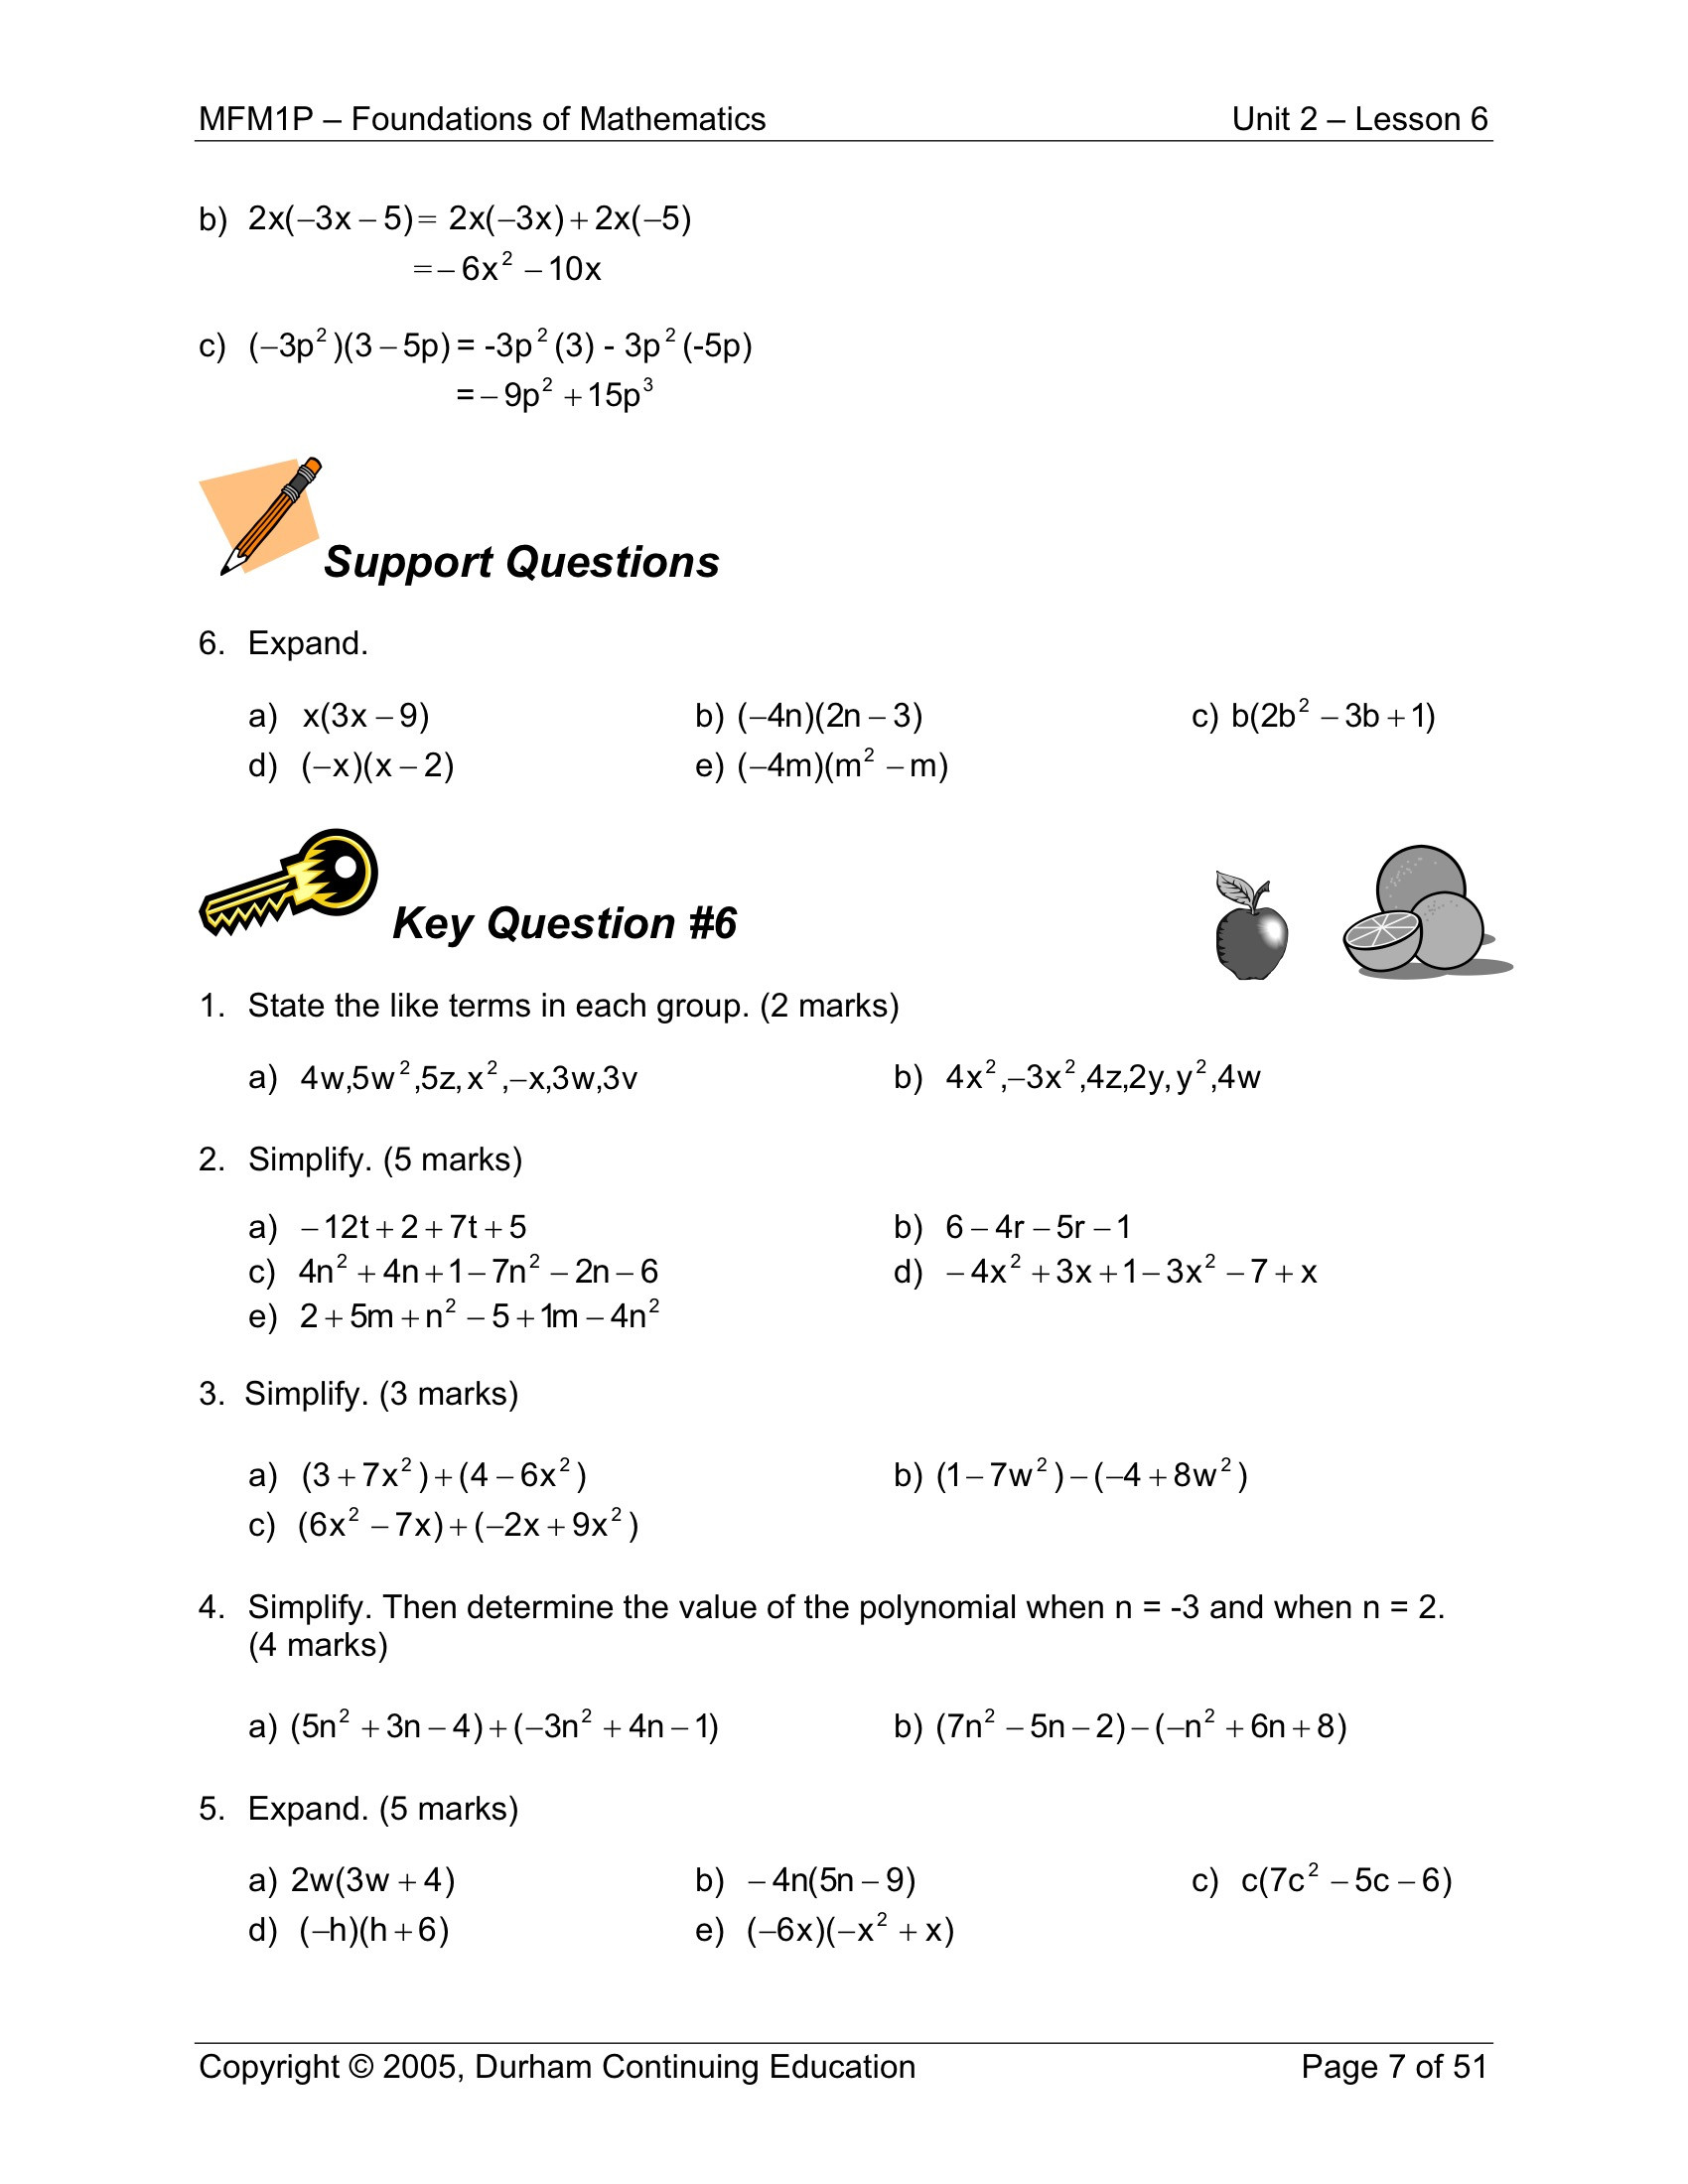 9th Grade Printable Worksheets Grade Math Worksheets Printable and Activities for 9th